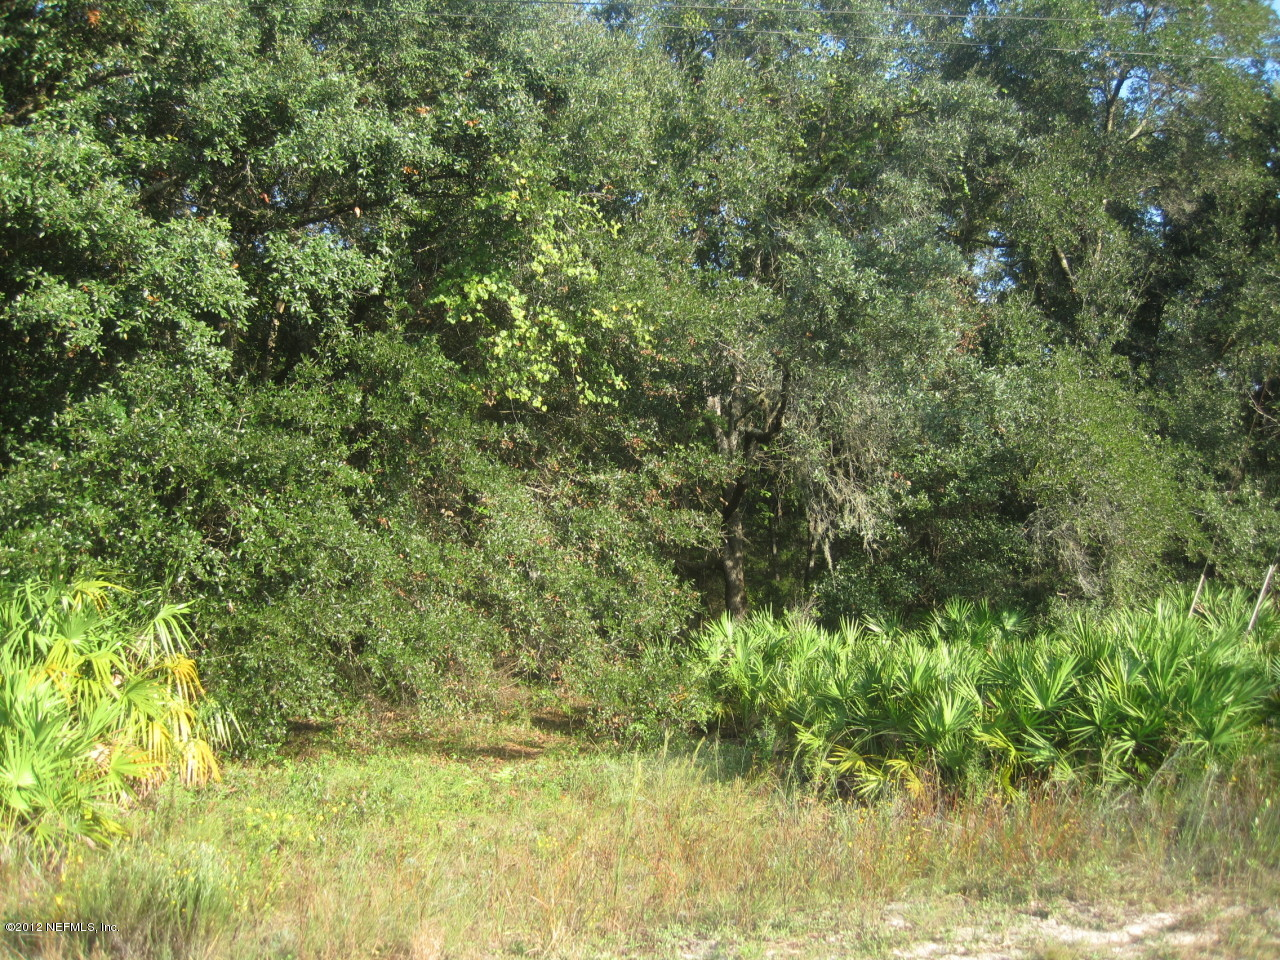 0 silver lake, PALATKA, FLORIDA 32177, ,Vacant land,For sale,silver lake,637436